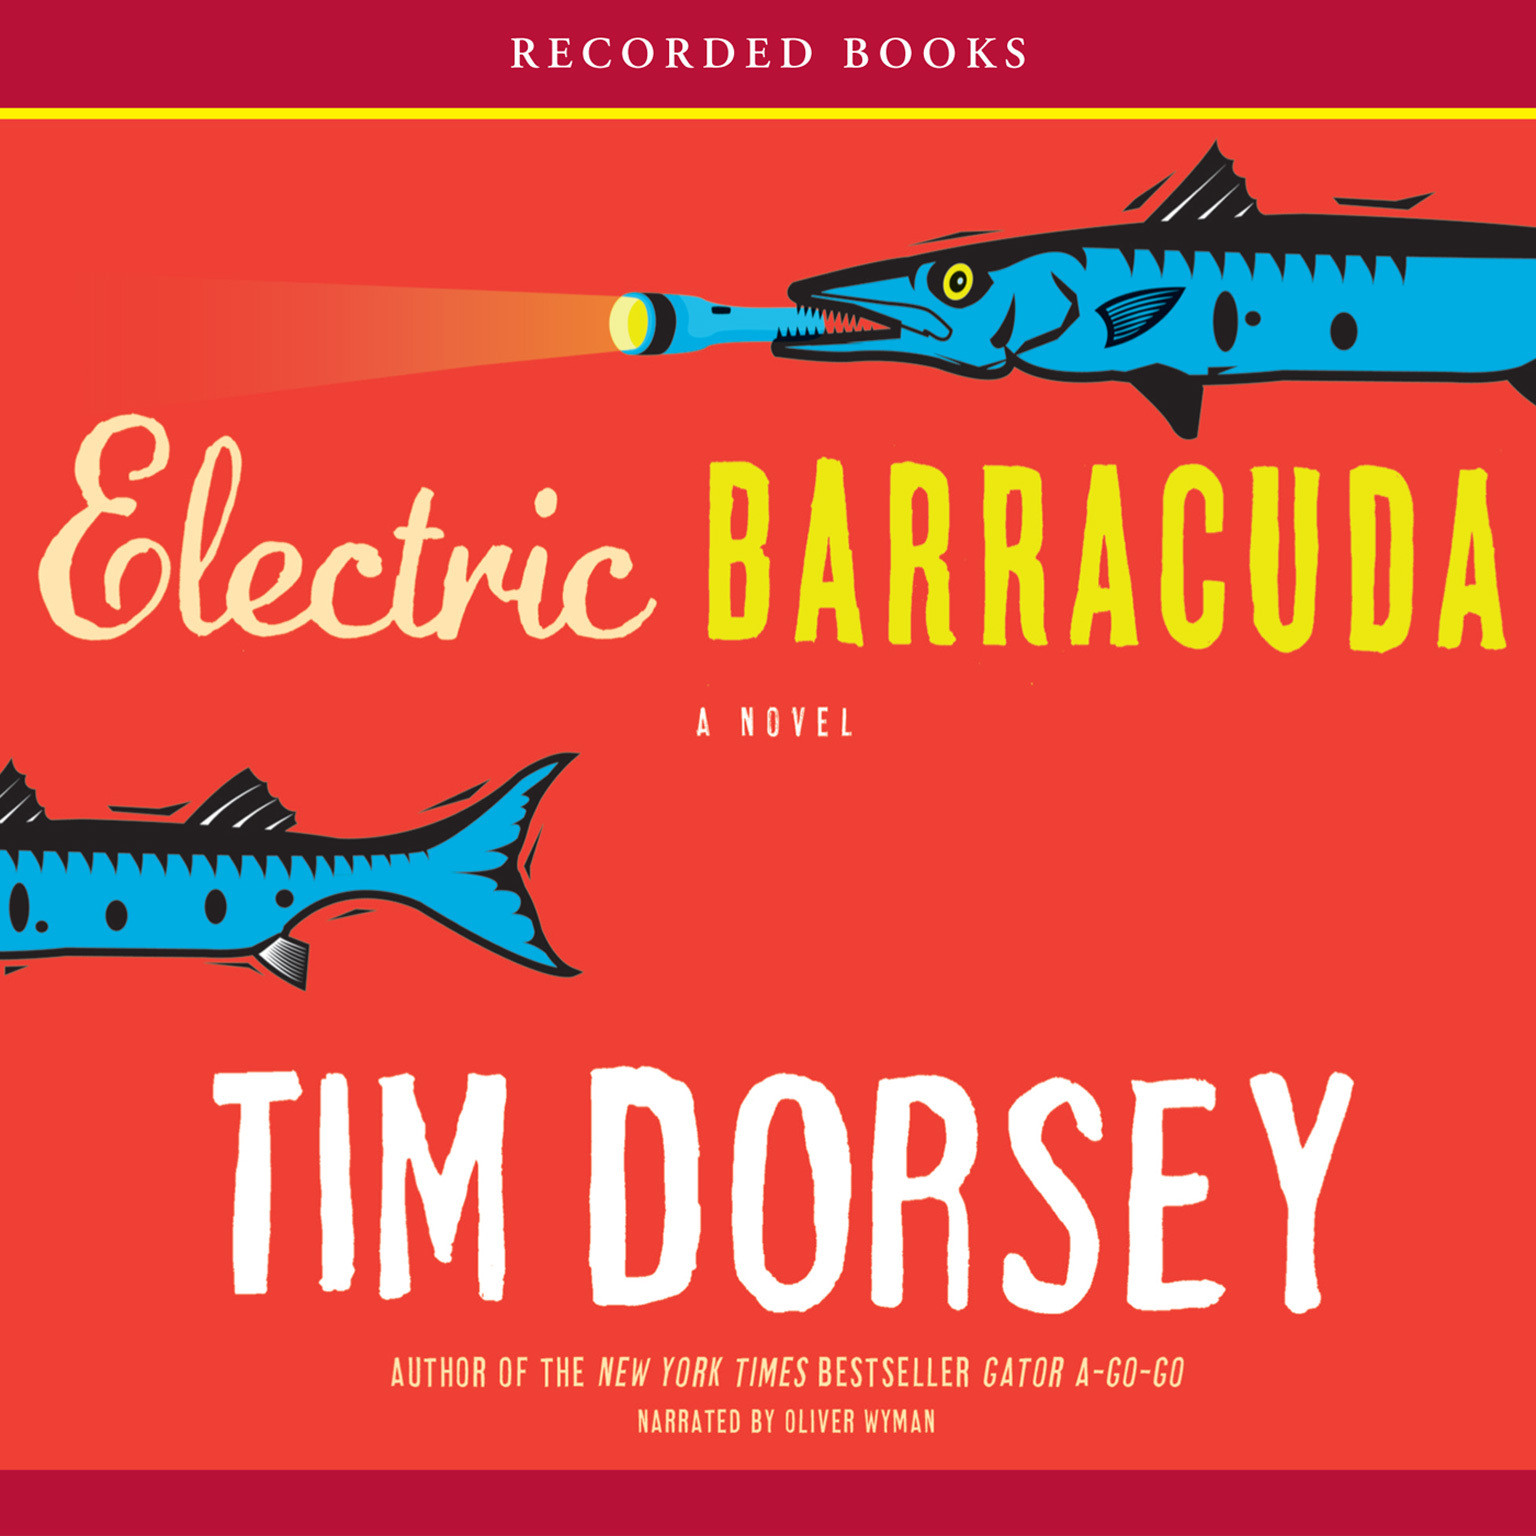 Download Electric Barracuda Audiobook by Tim Dorsey read